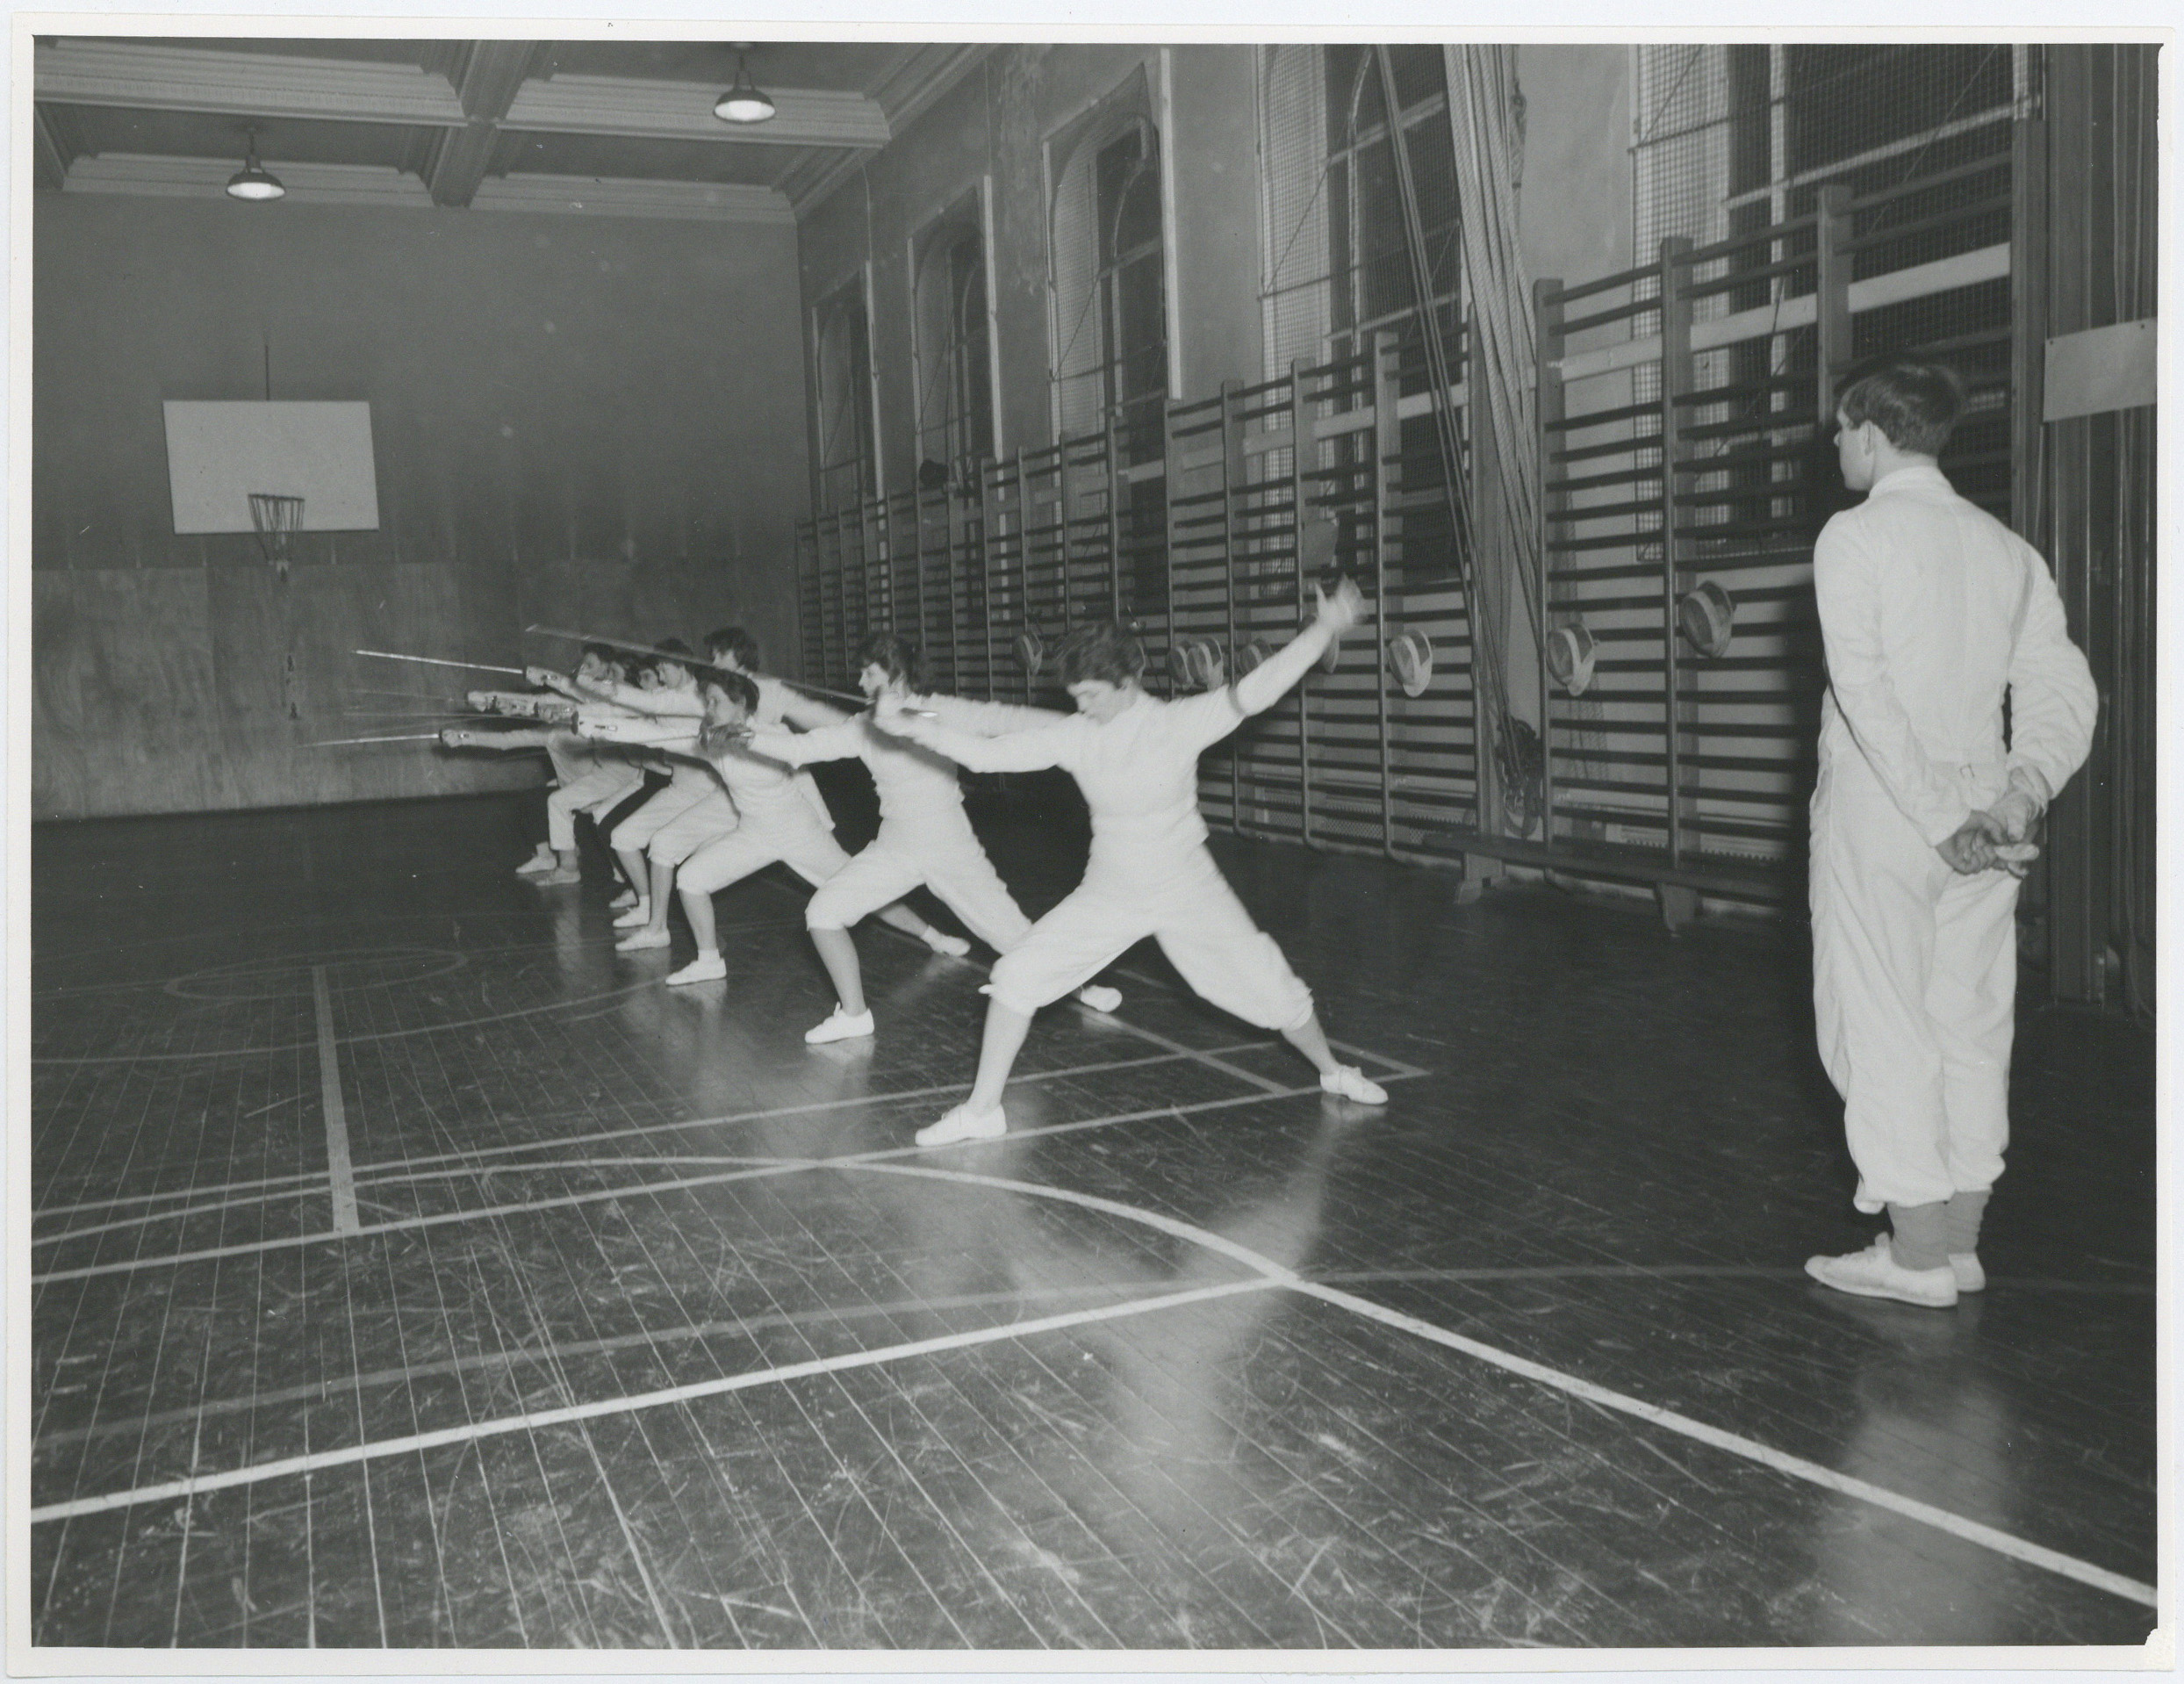 Fencing class, 1963